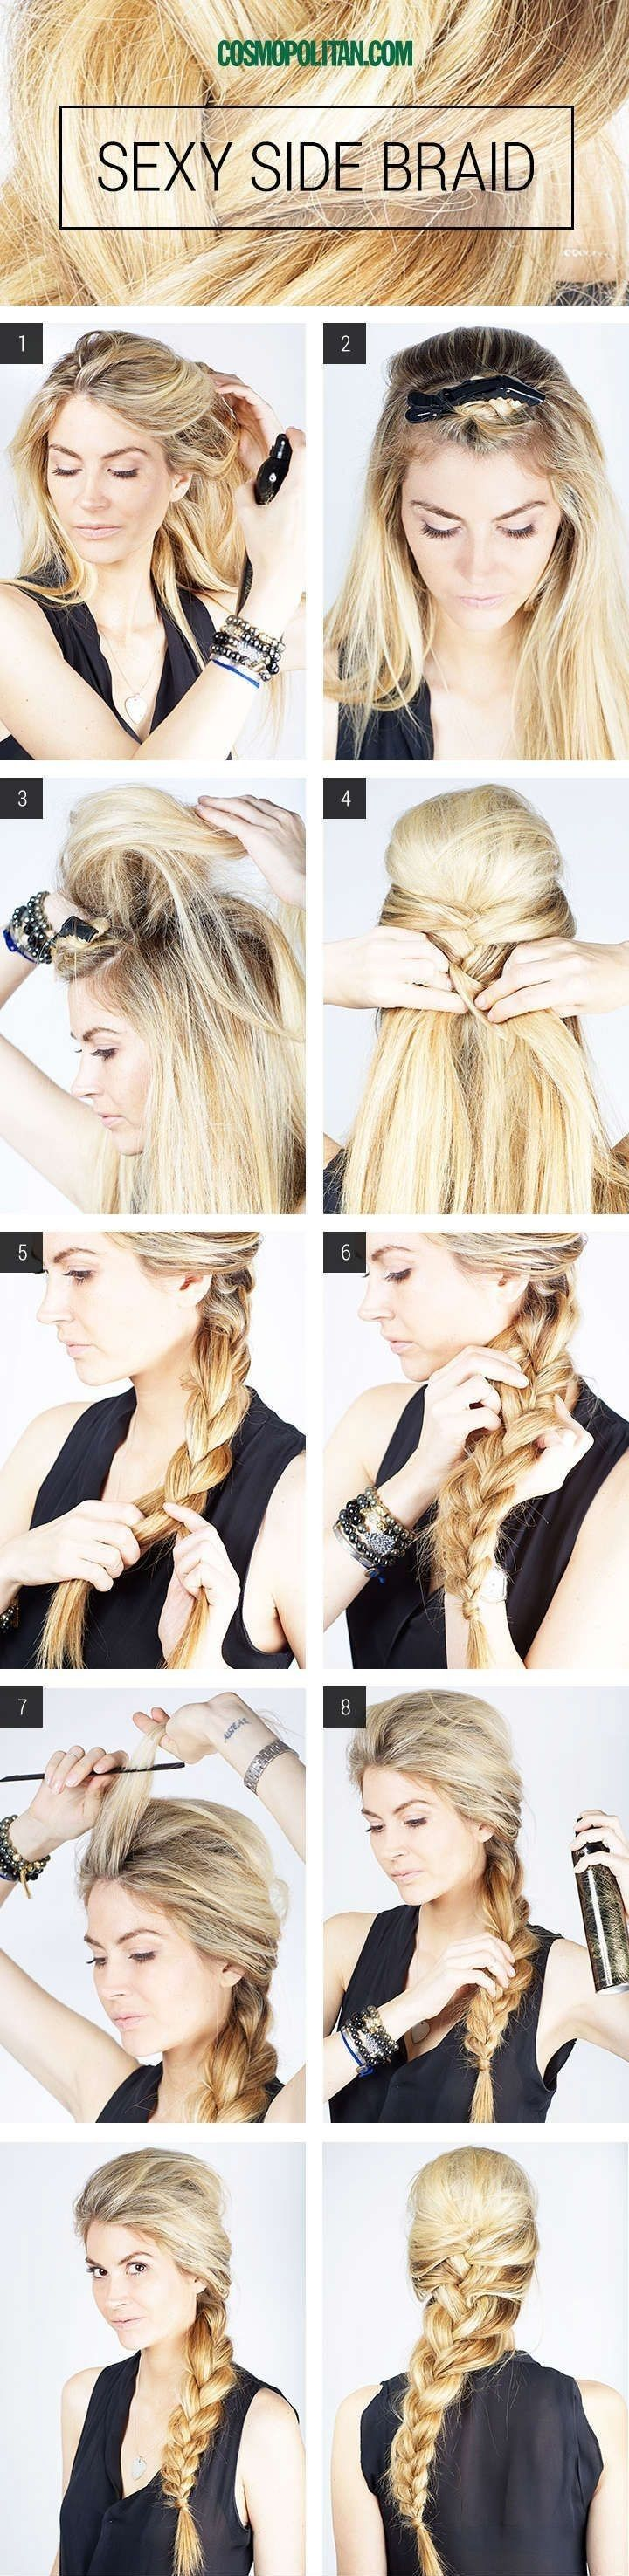 18 Simple fice Hairstyles for Women You Have To See